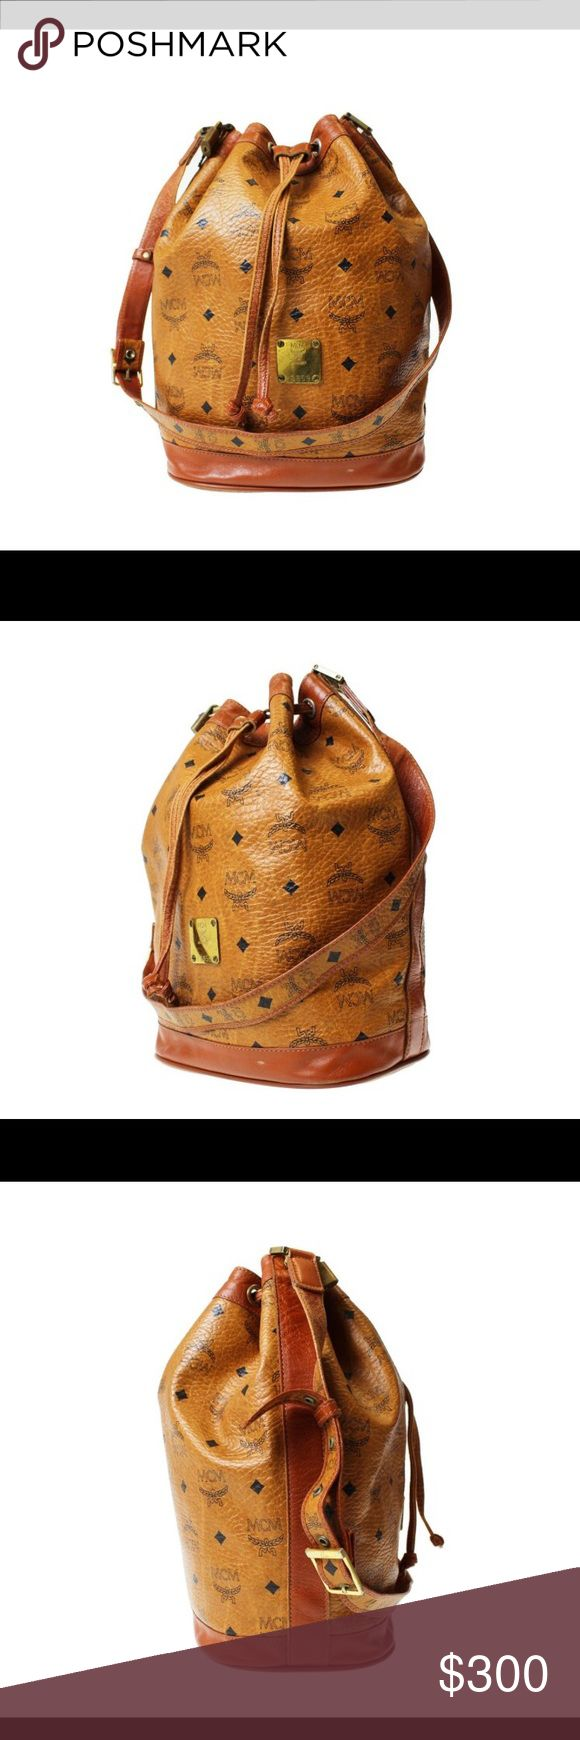 """Authentic MCM Bucket Bag Vintage Authentic MCM Bucket Bag. 13.7"""" tall. 9.4"""" long. Adjustable strap. Good condition. Price negotiable. MCM Bags Shoulder Bags"""